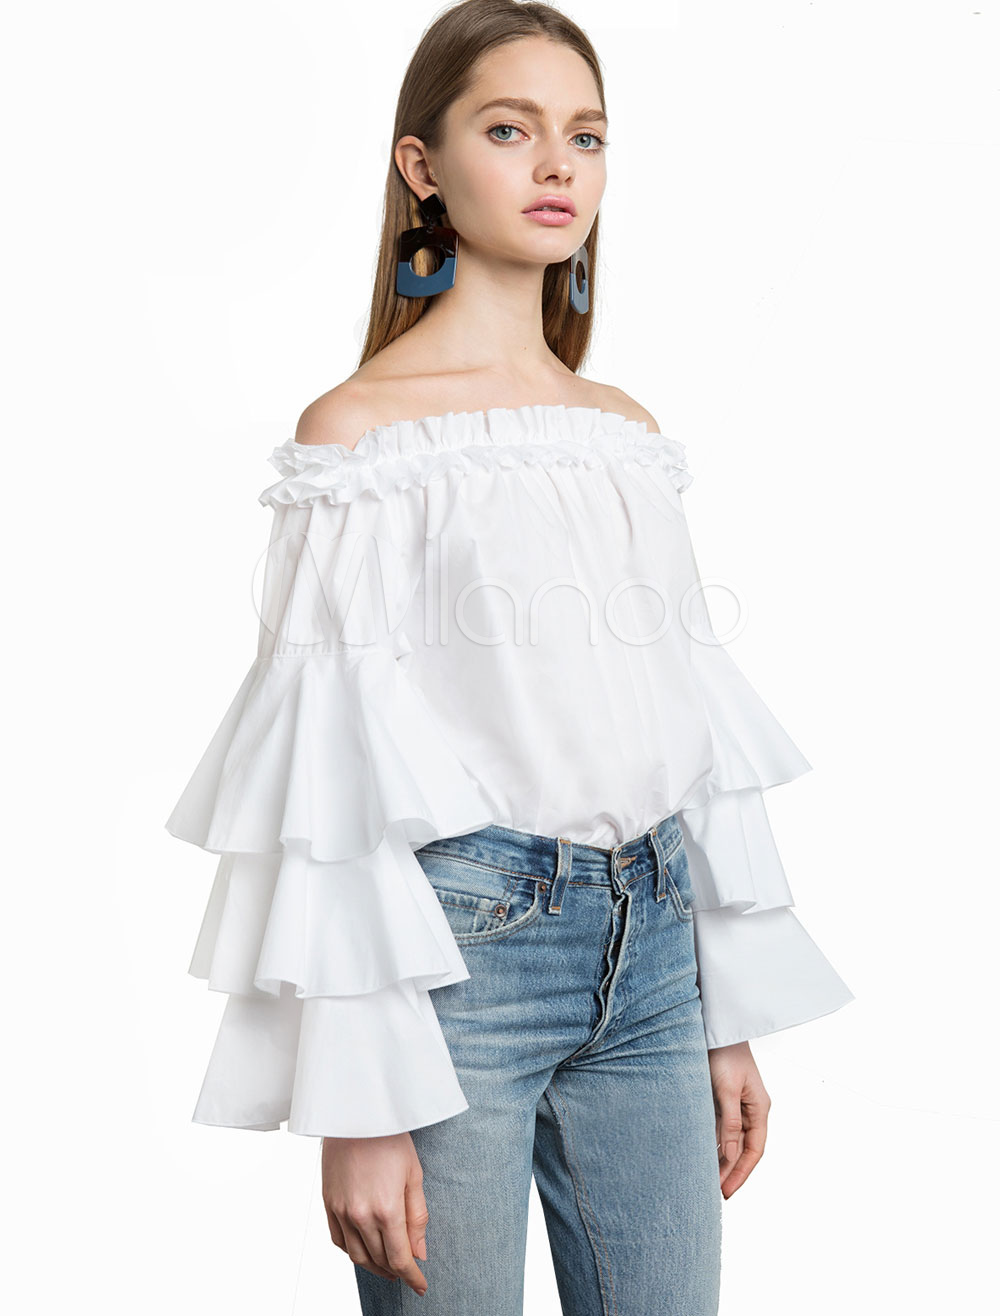 Buy White Bardot Top Off The Shoulder Blouses Tiered Bell Sleeve Ruffles Women's Summer Tops for $18.99 in Milanoo store